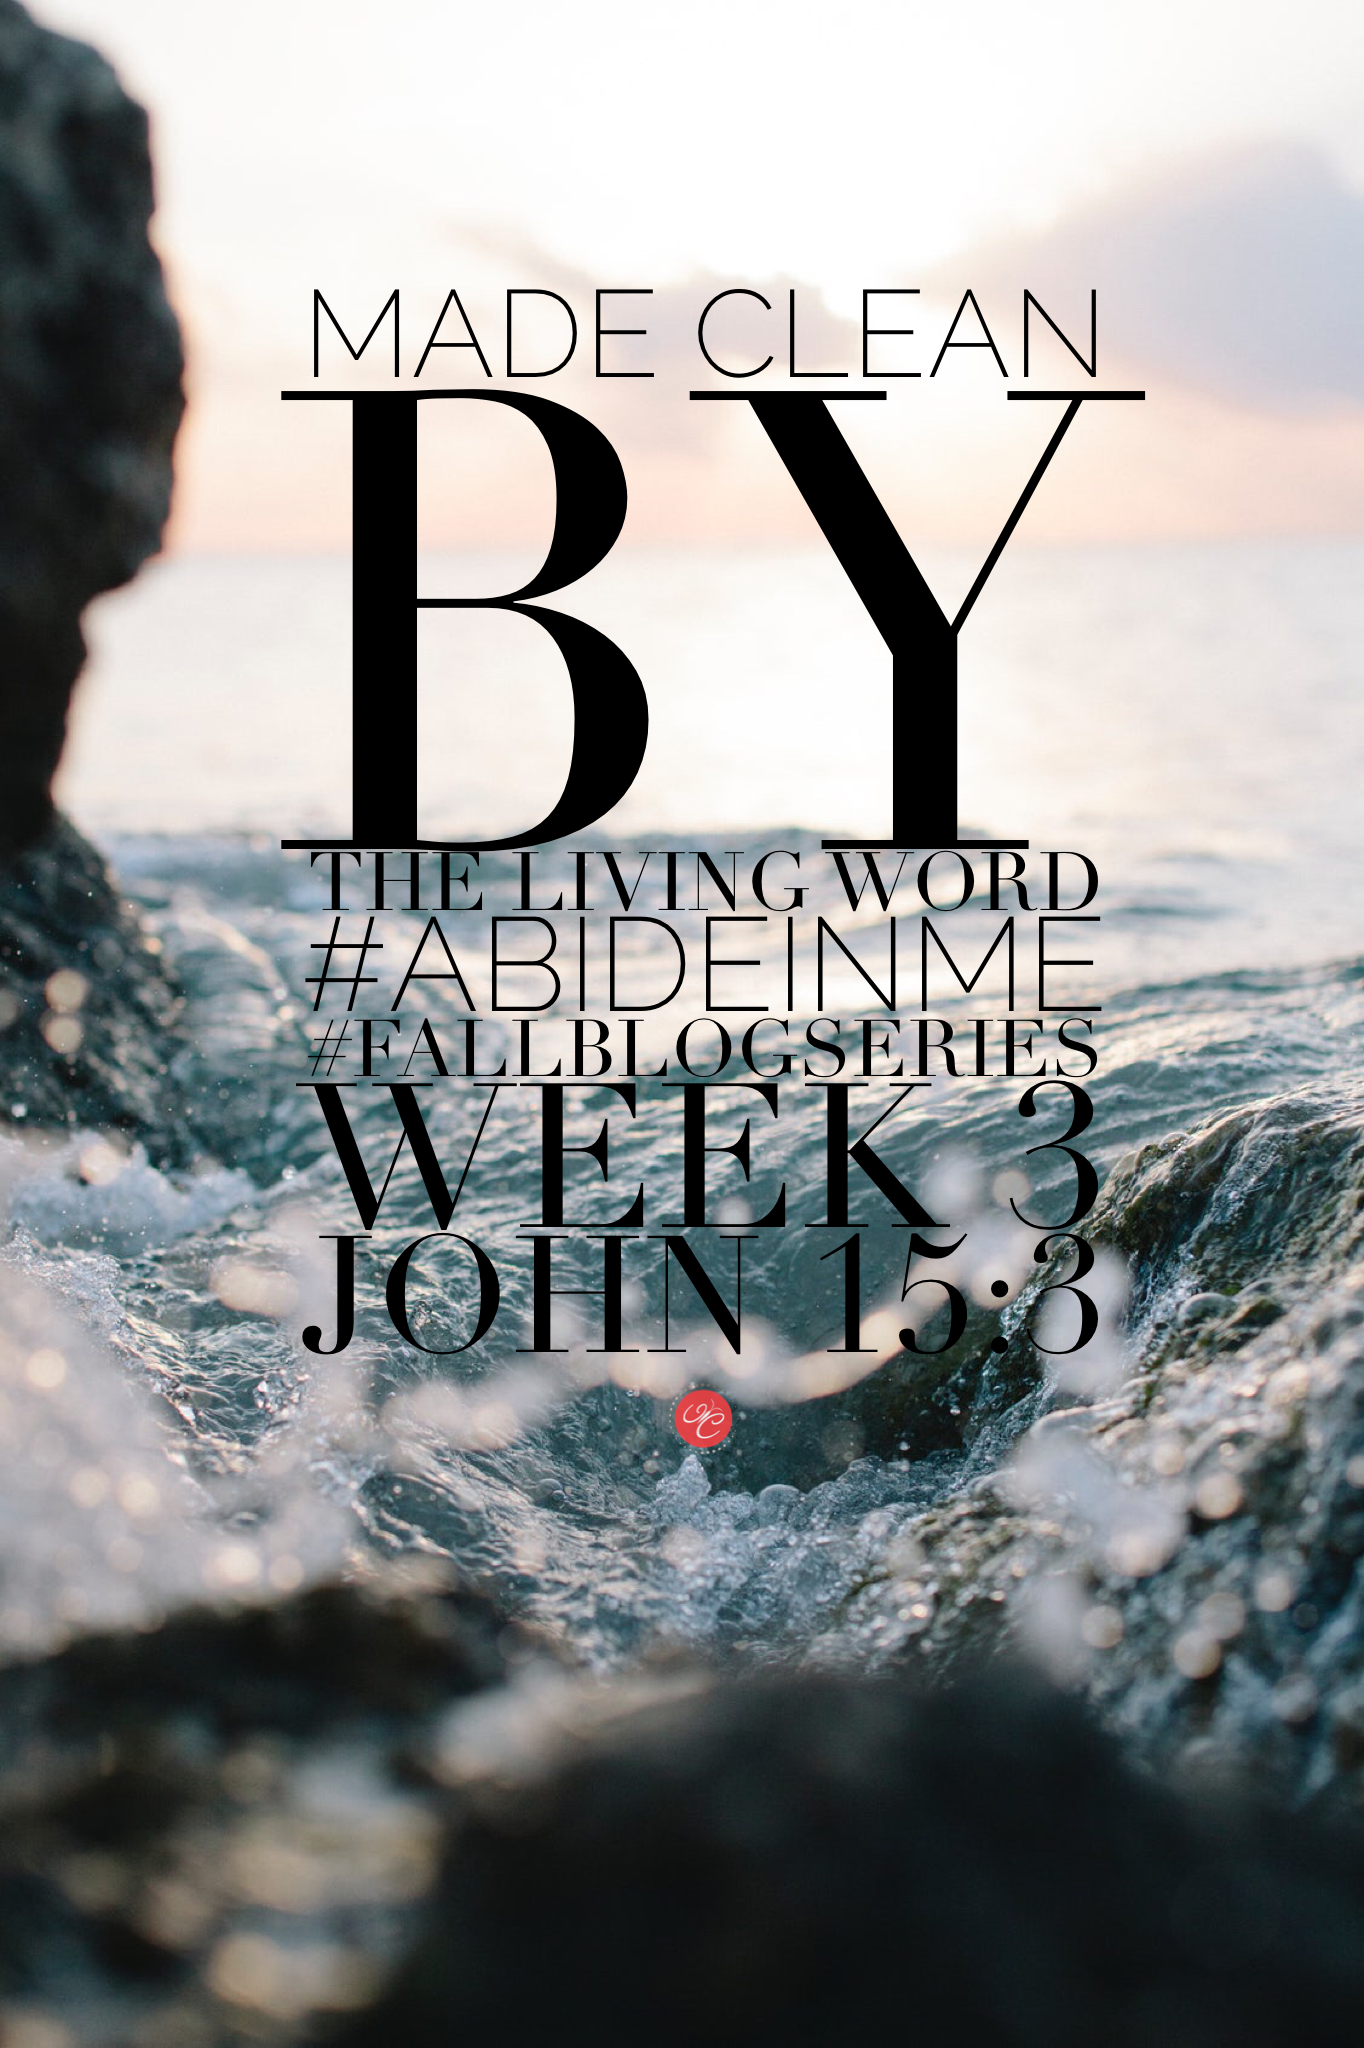 Made Clean by Living the Word: John 15:3